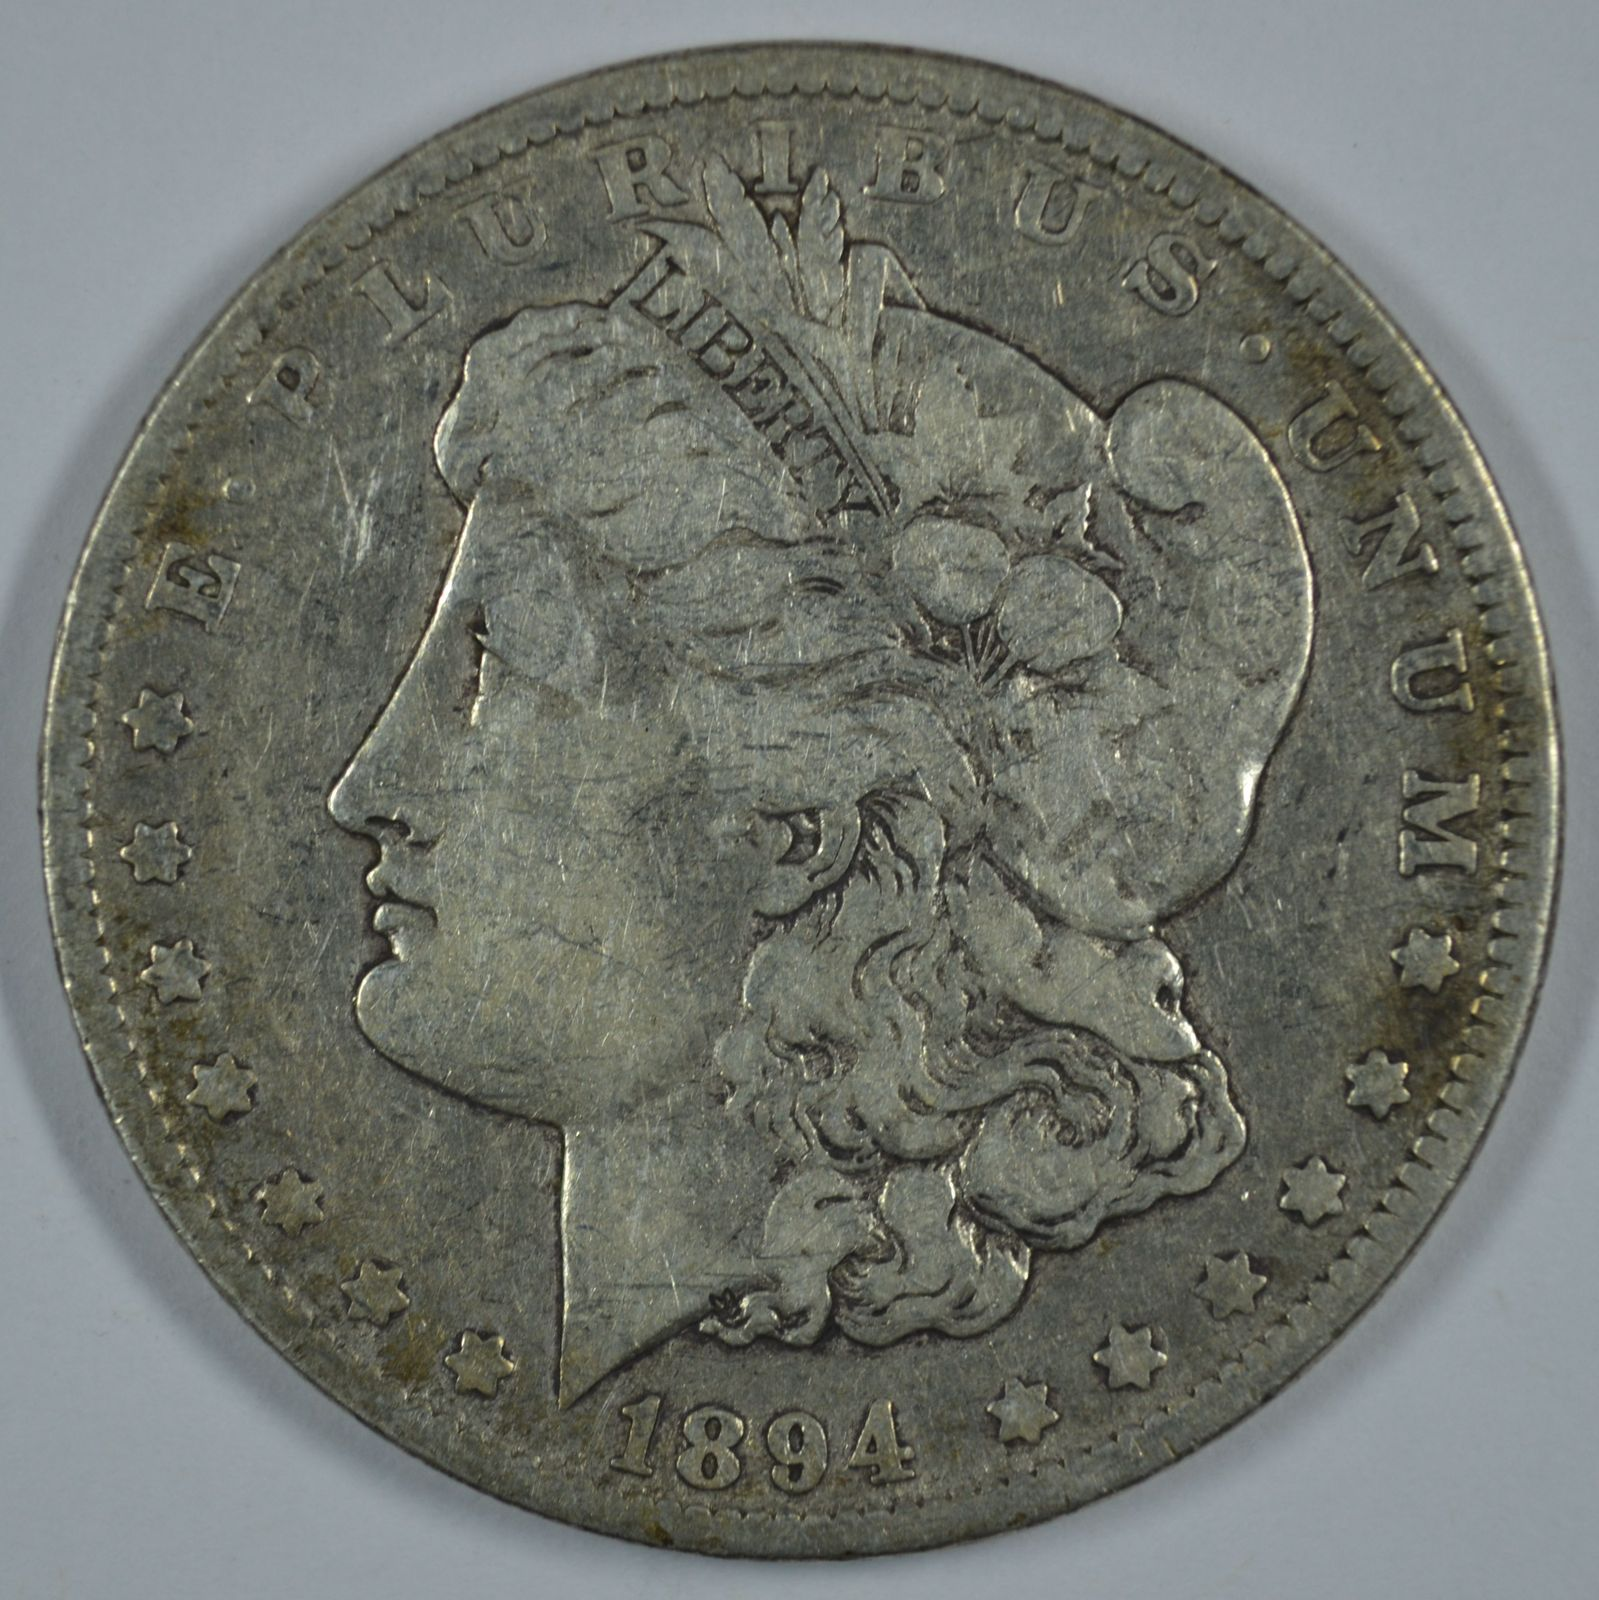 Primary image for 1894 O Morgan circulated silver dollar - VG details